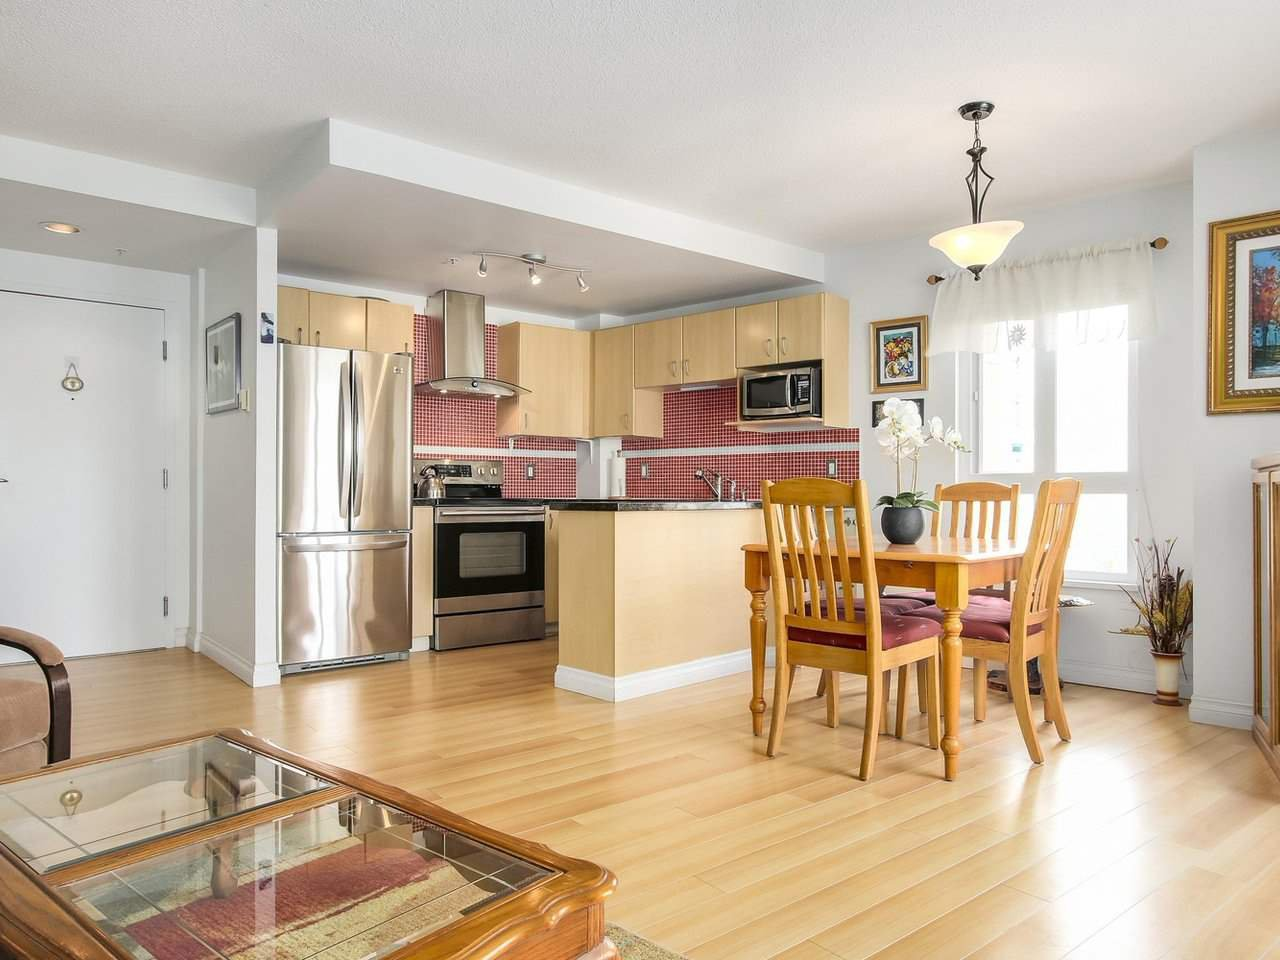 """Photo 10: Photos: 801 121 W 15TH Street in North Vancouver: Central Lonsdale Condo for sale in """"ALEGRIA"""" : MLS®# R2196958"""